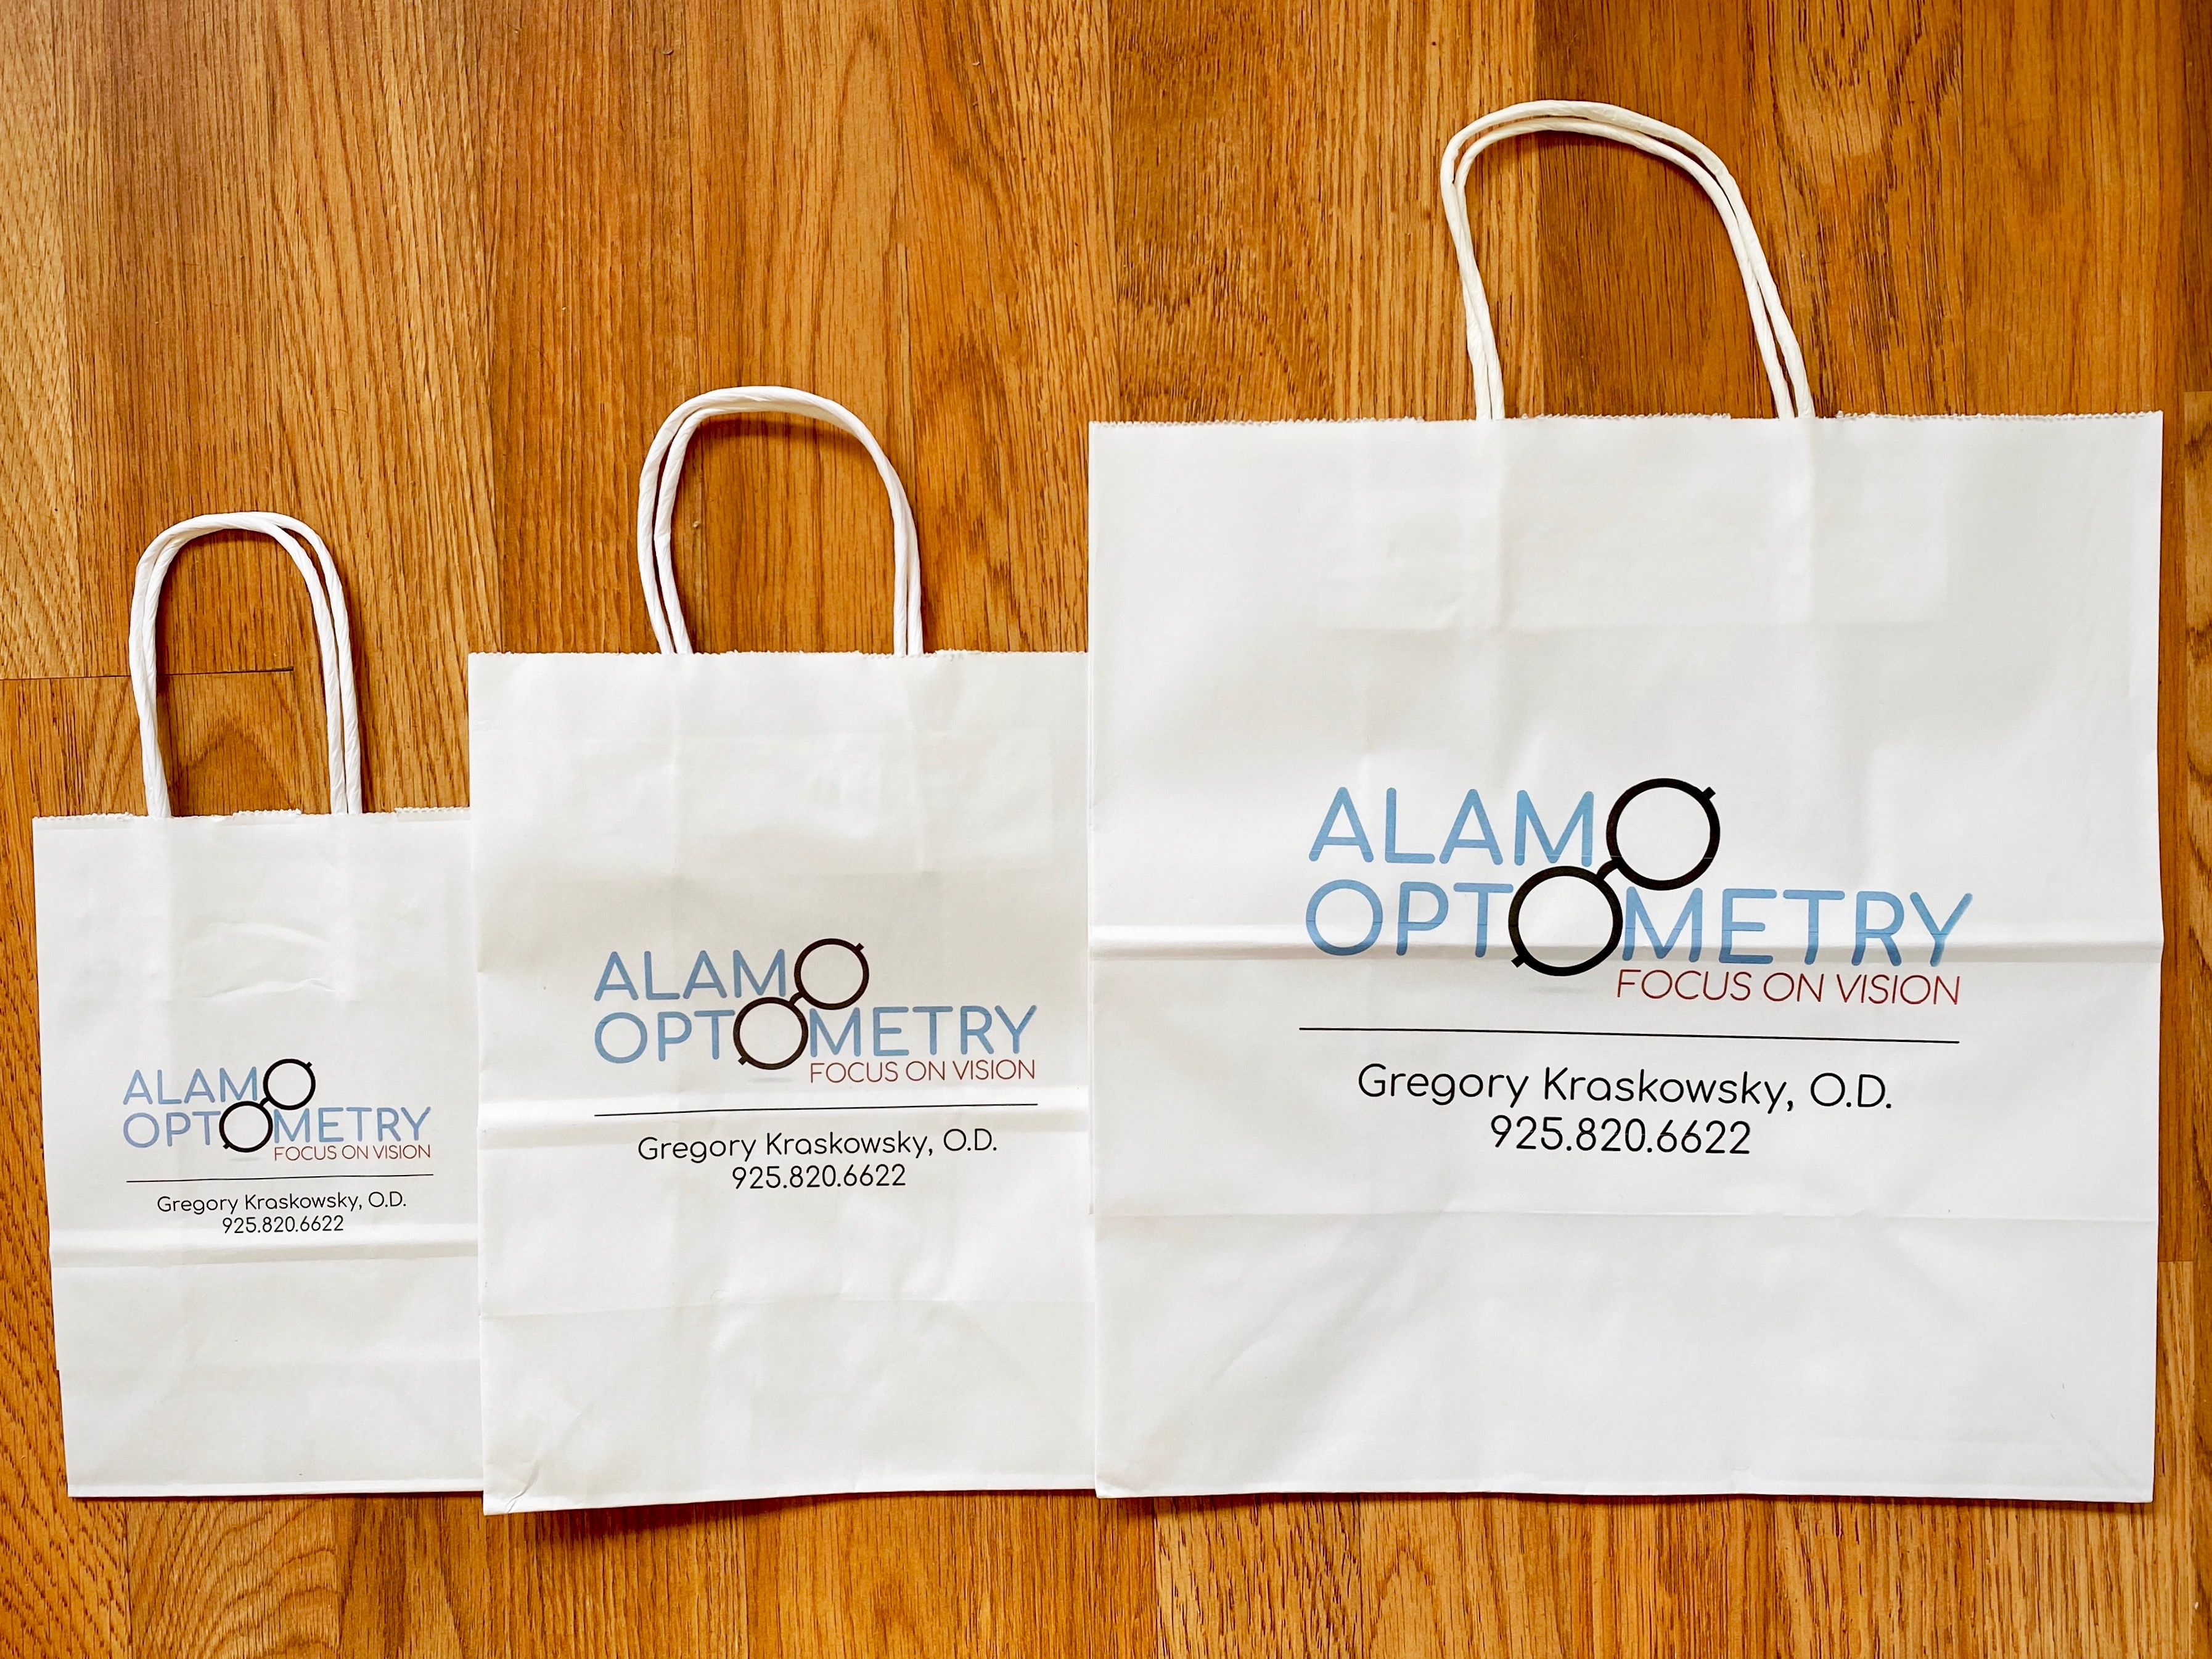 Alamo Optometry